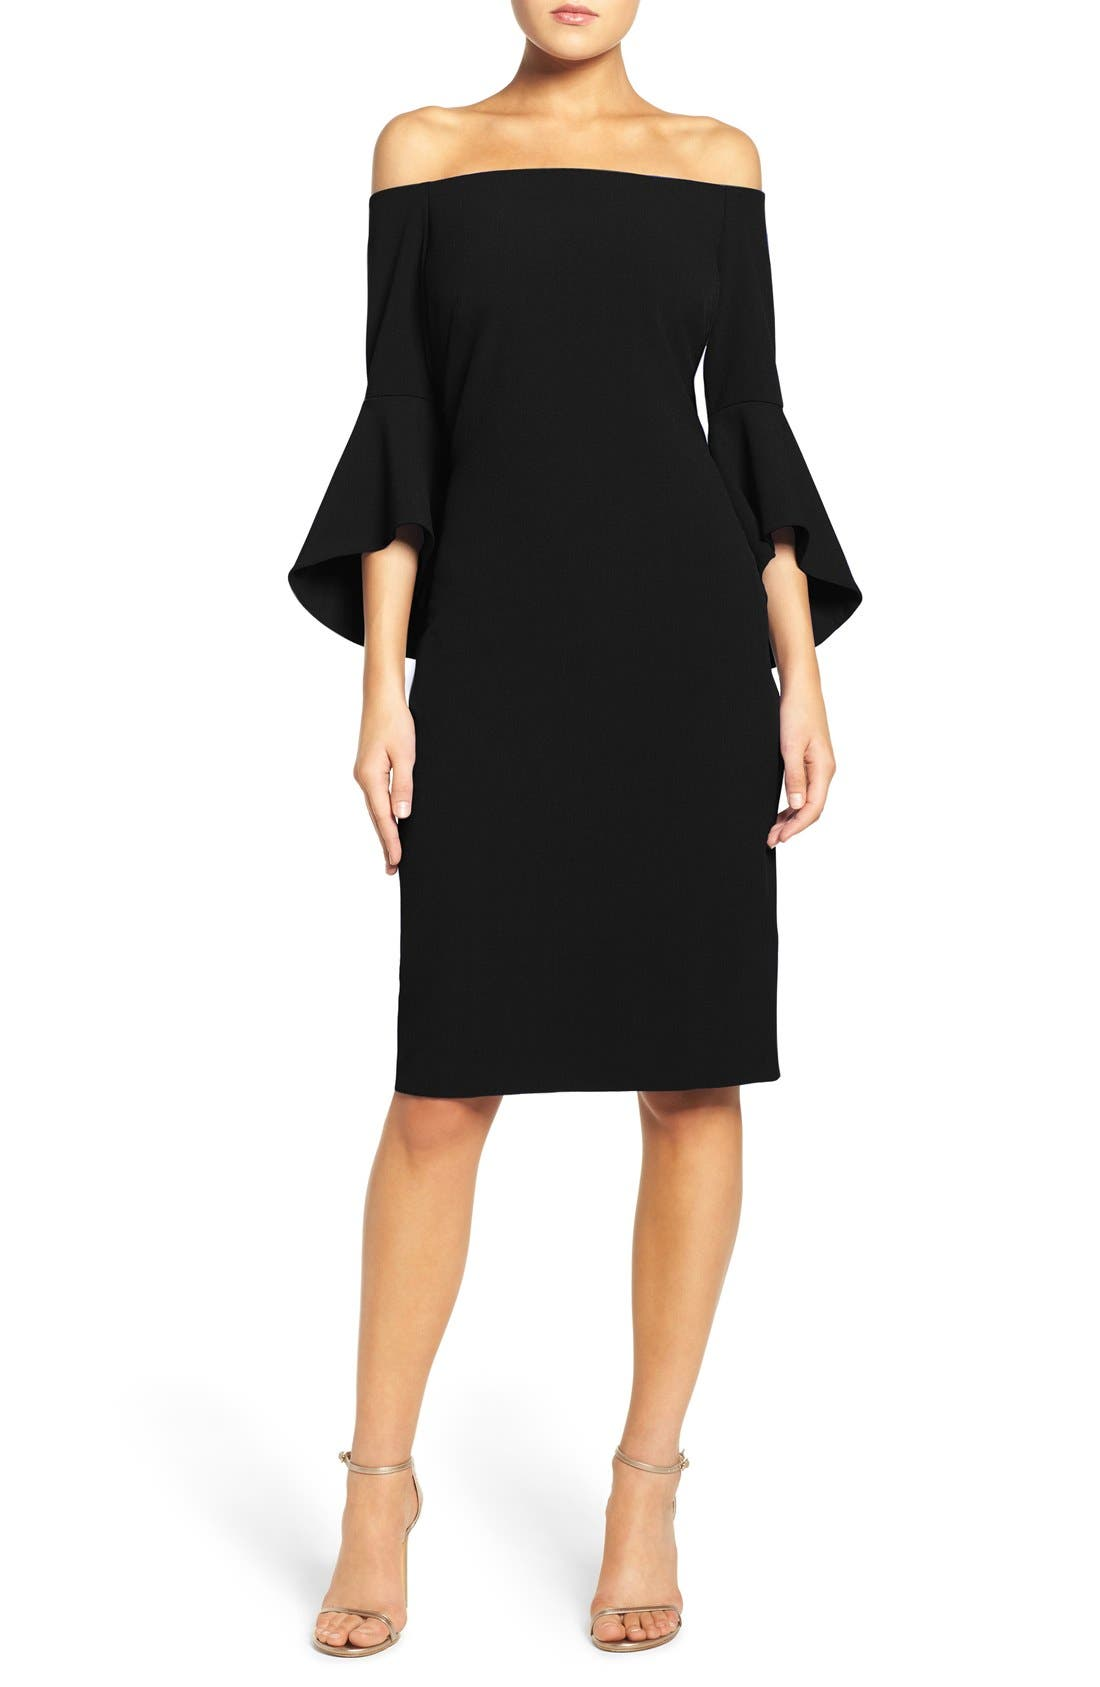 Women's Black Knee-Length Dresses | Nordstrom